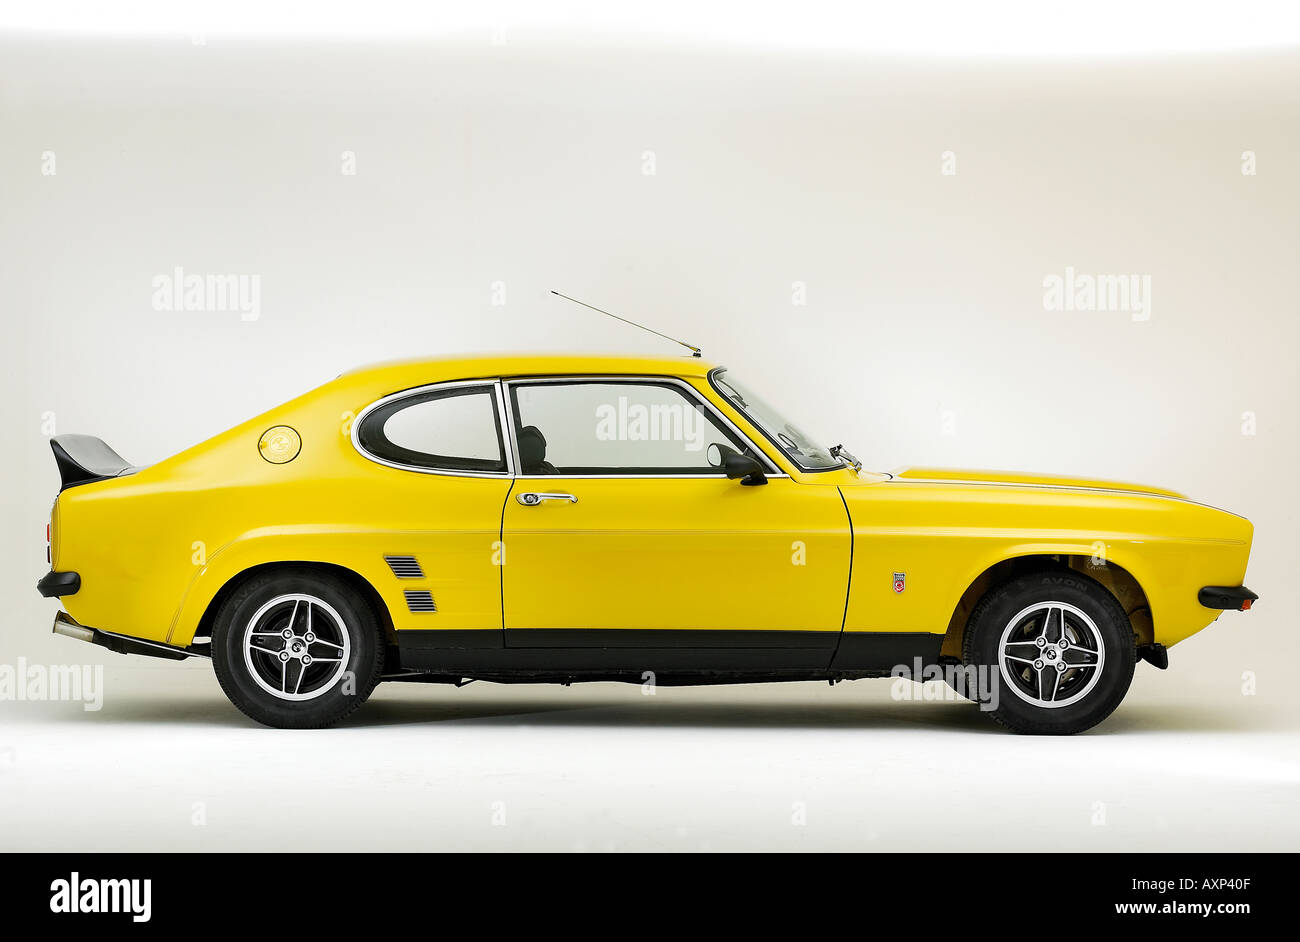 1973 ford capri rs 3100 stock photo 3138574 alamy. Black Bedroom Furniture Sets. Home Design Ideas